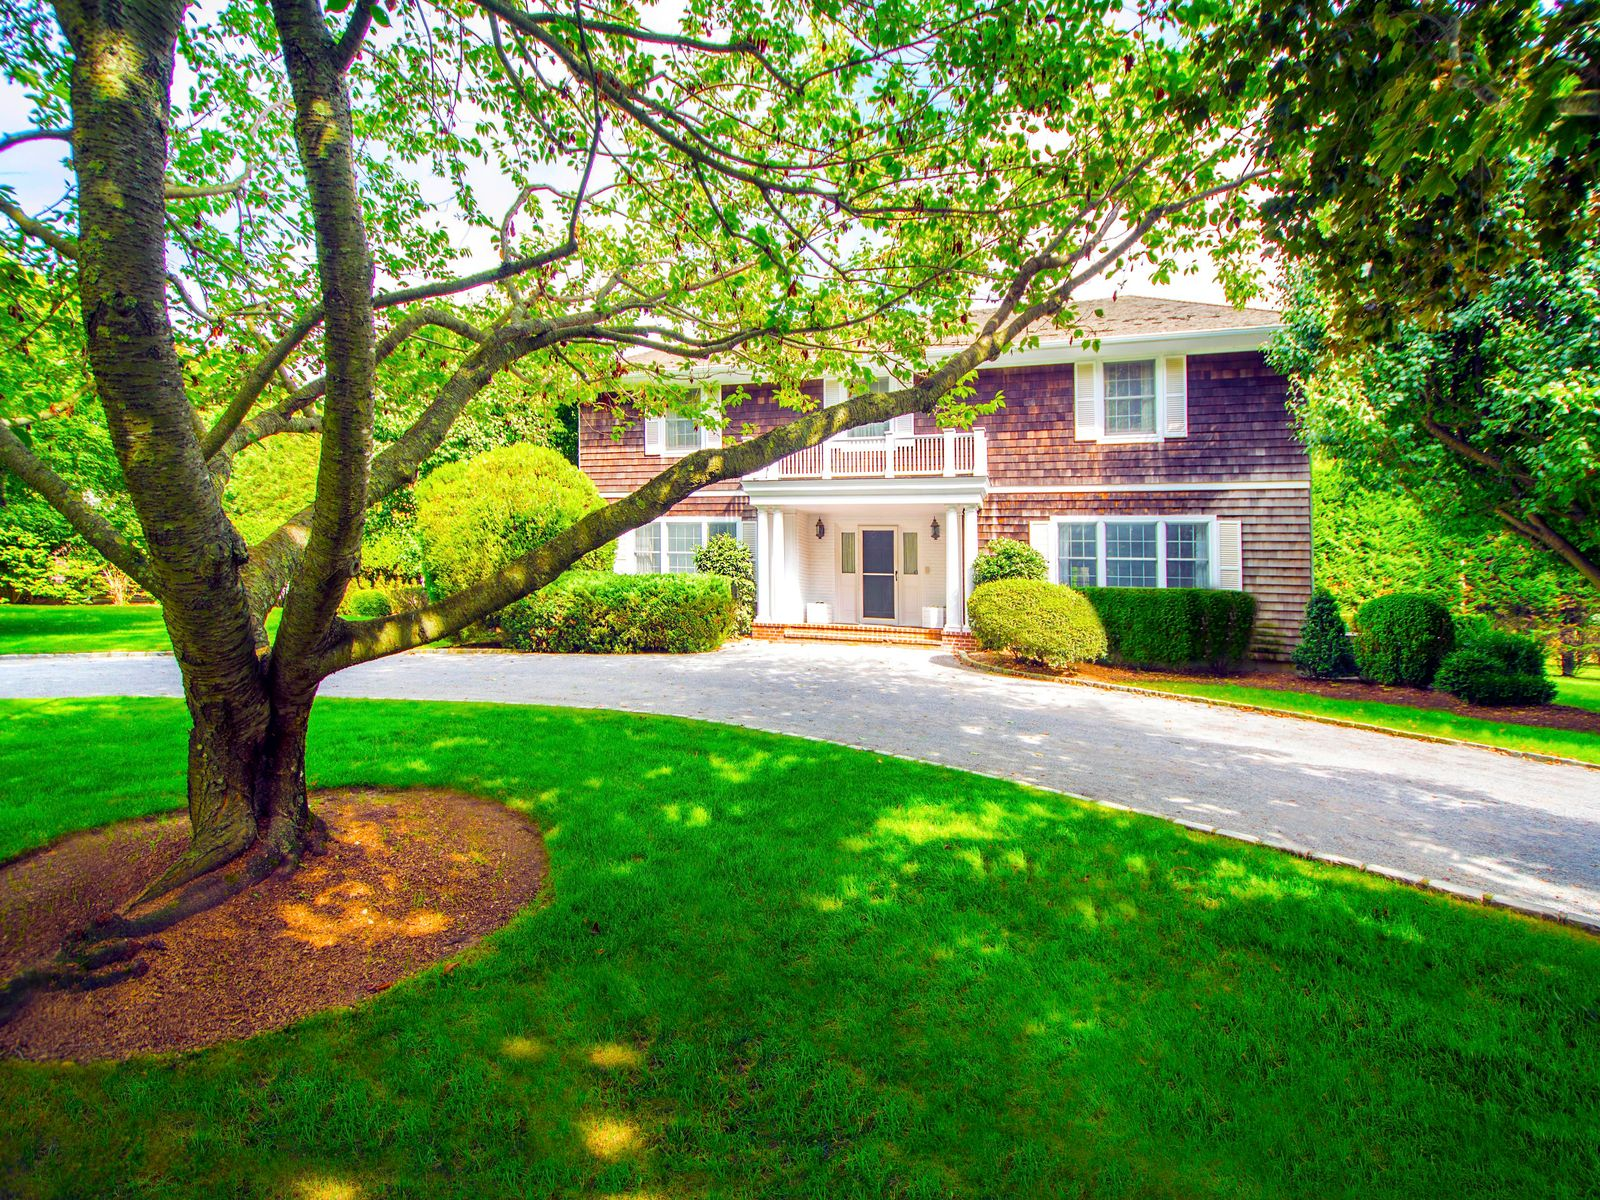 Southampton Estate Section, Southampton NY Single Family Home - Hamptons Real Estate